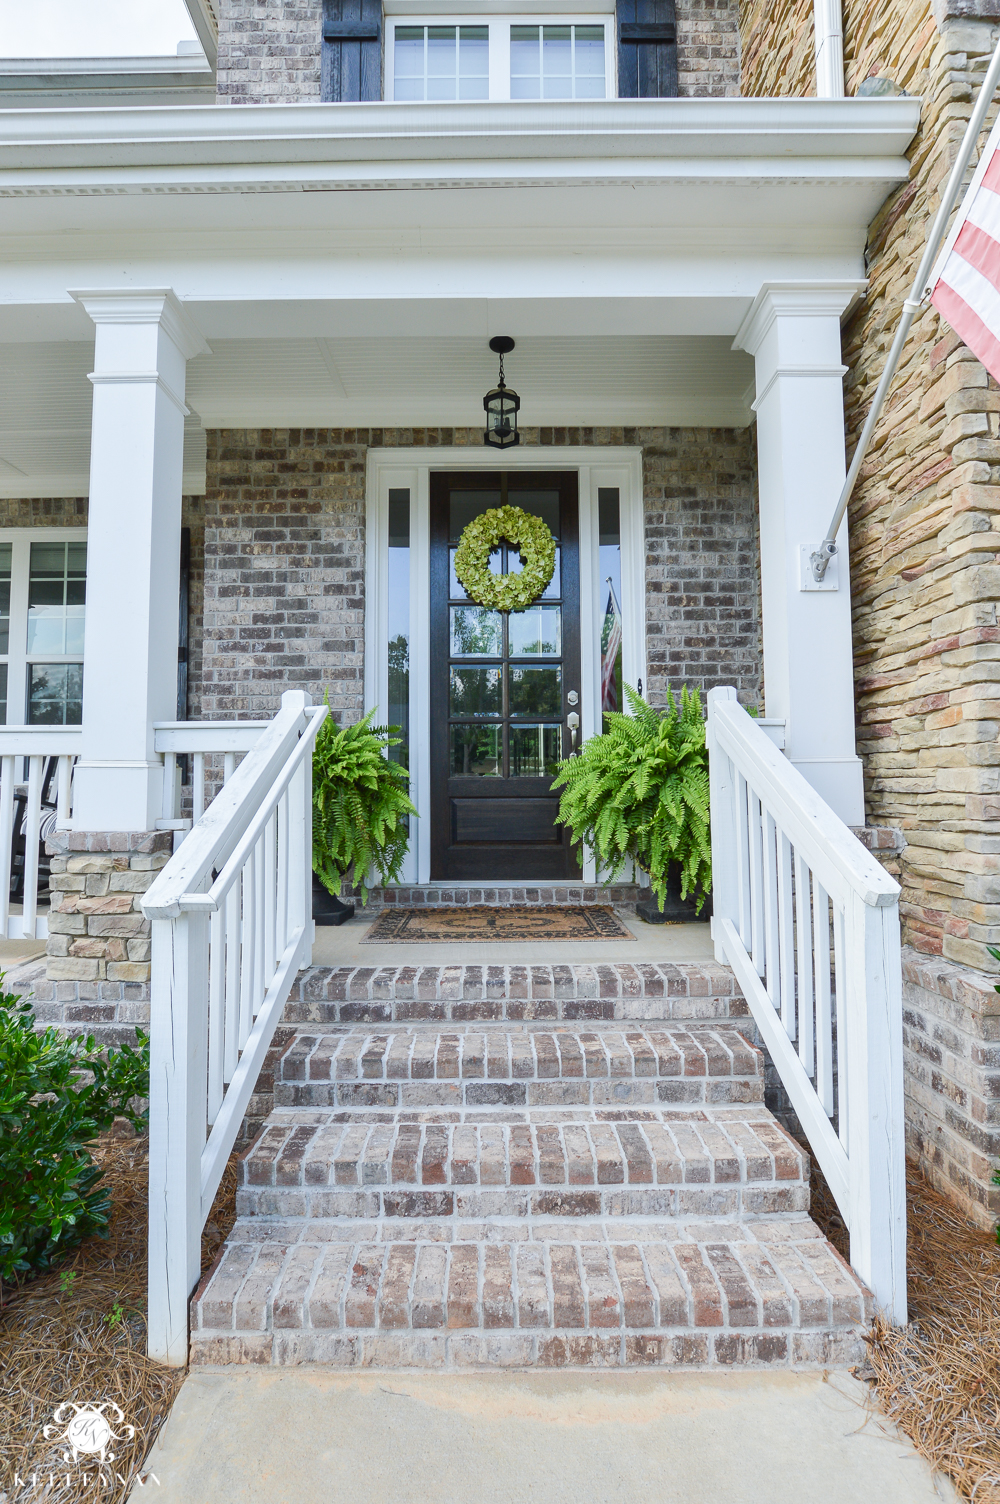 Shades of Summer Home Tour with Neutrals and Naturals- craftsman style home with brick and stacked stone and ferns on either side of door